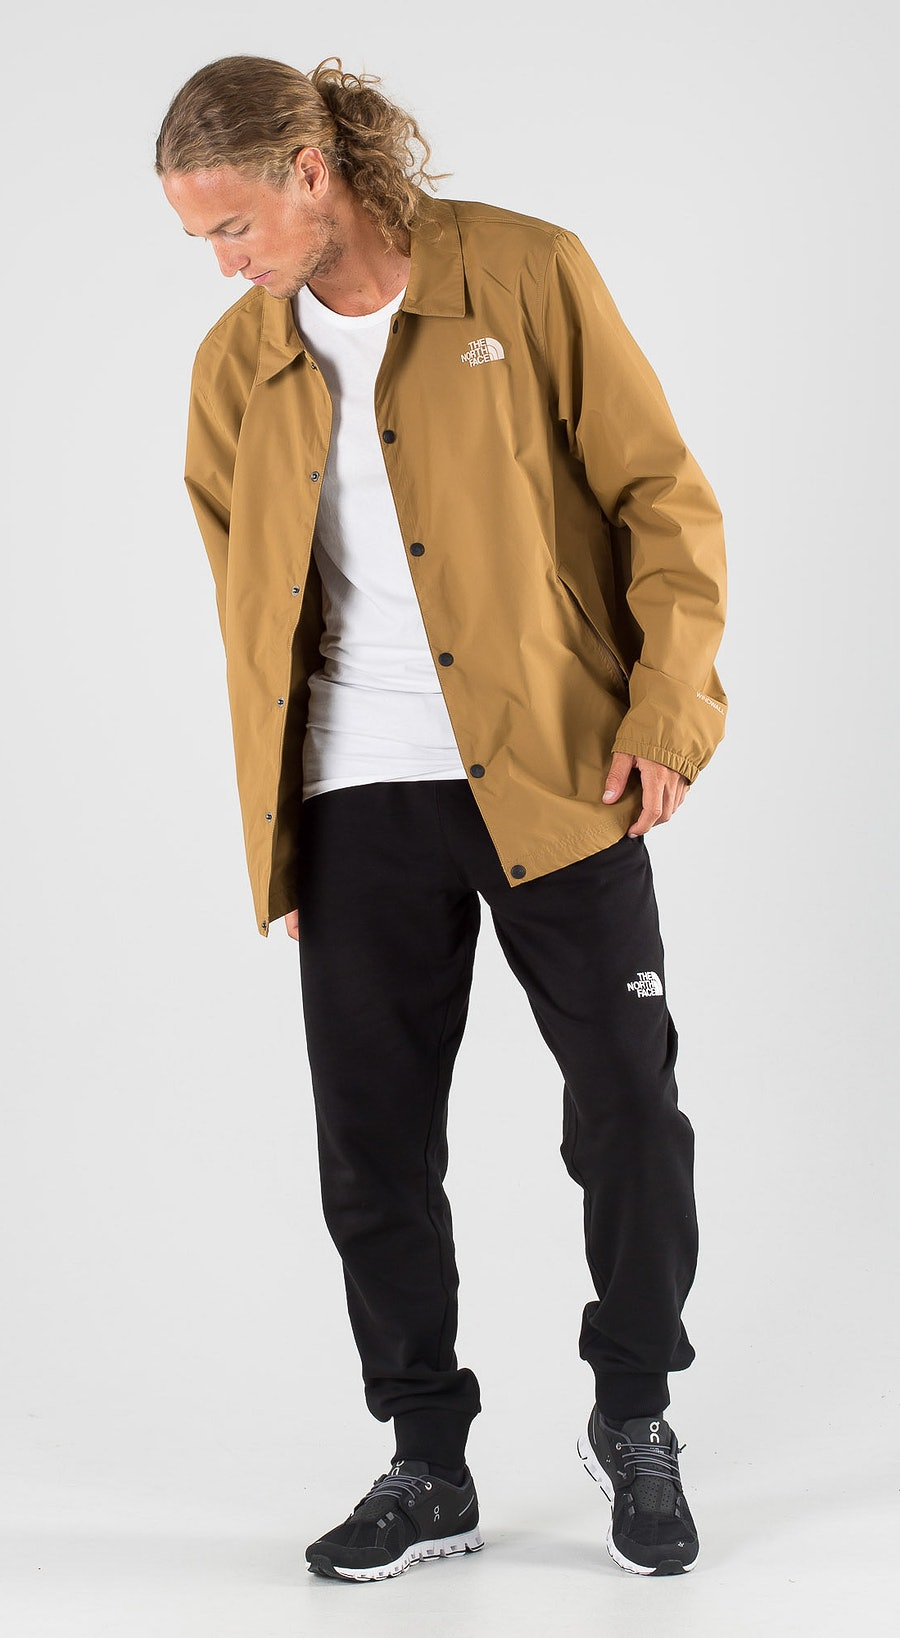 The North Face Walls Are Meant For Climbing Coaches Utility Brown Outfit Multi